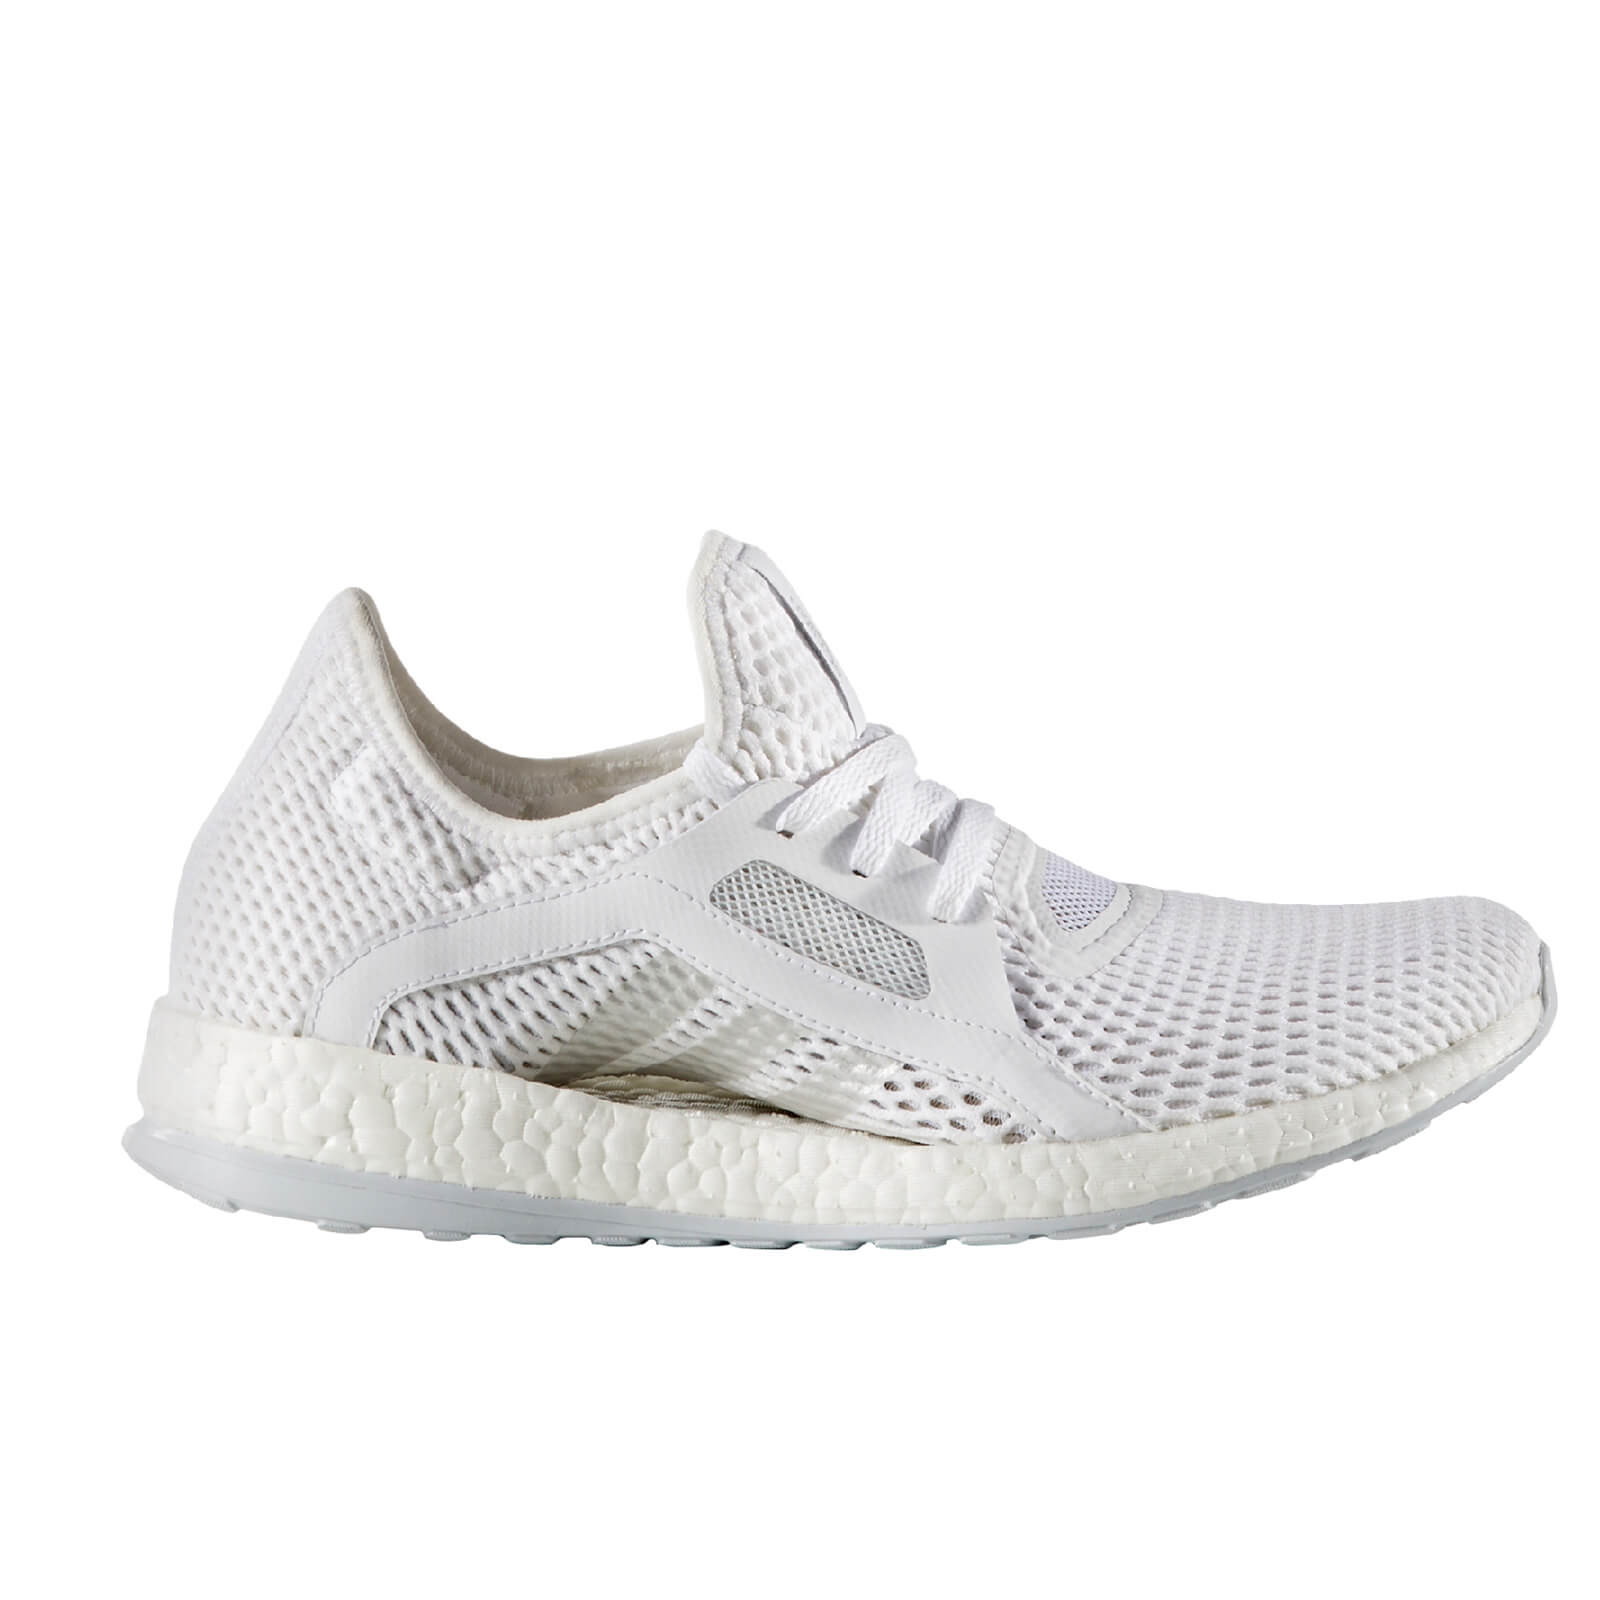 80d1600d8ddcf adidas Women s Pure Boost X Running Shoes - White